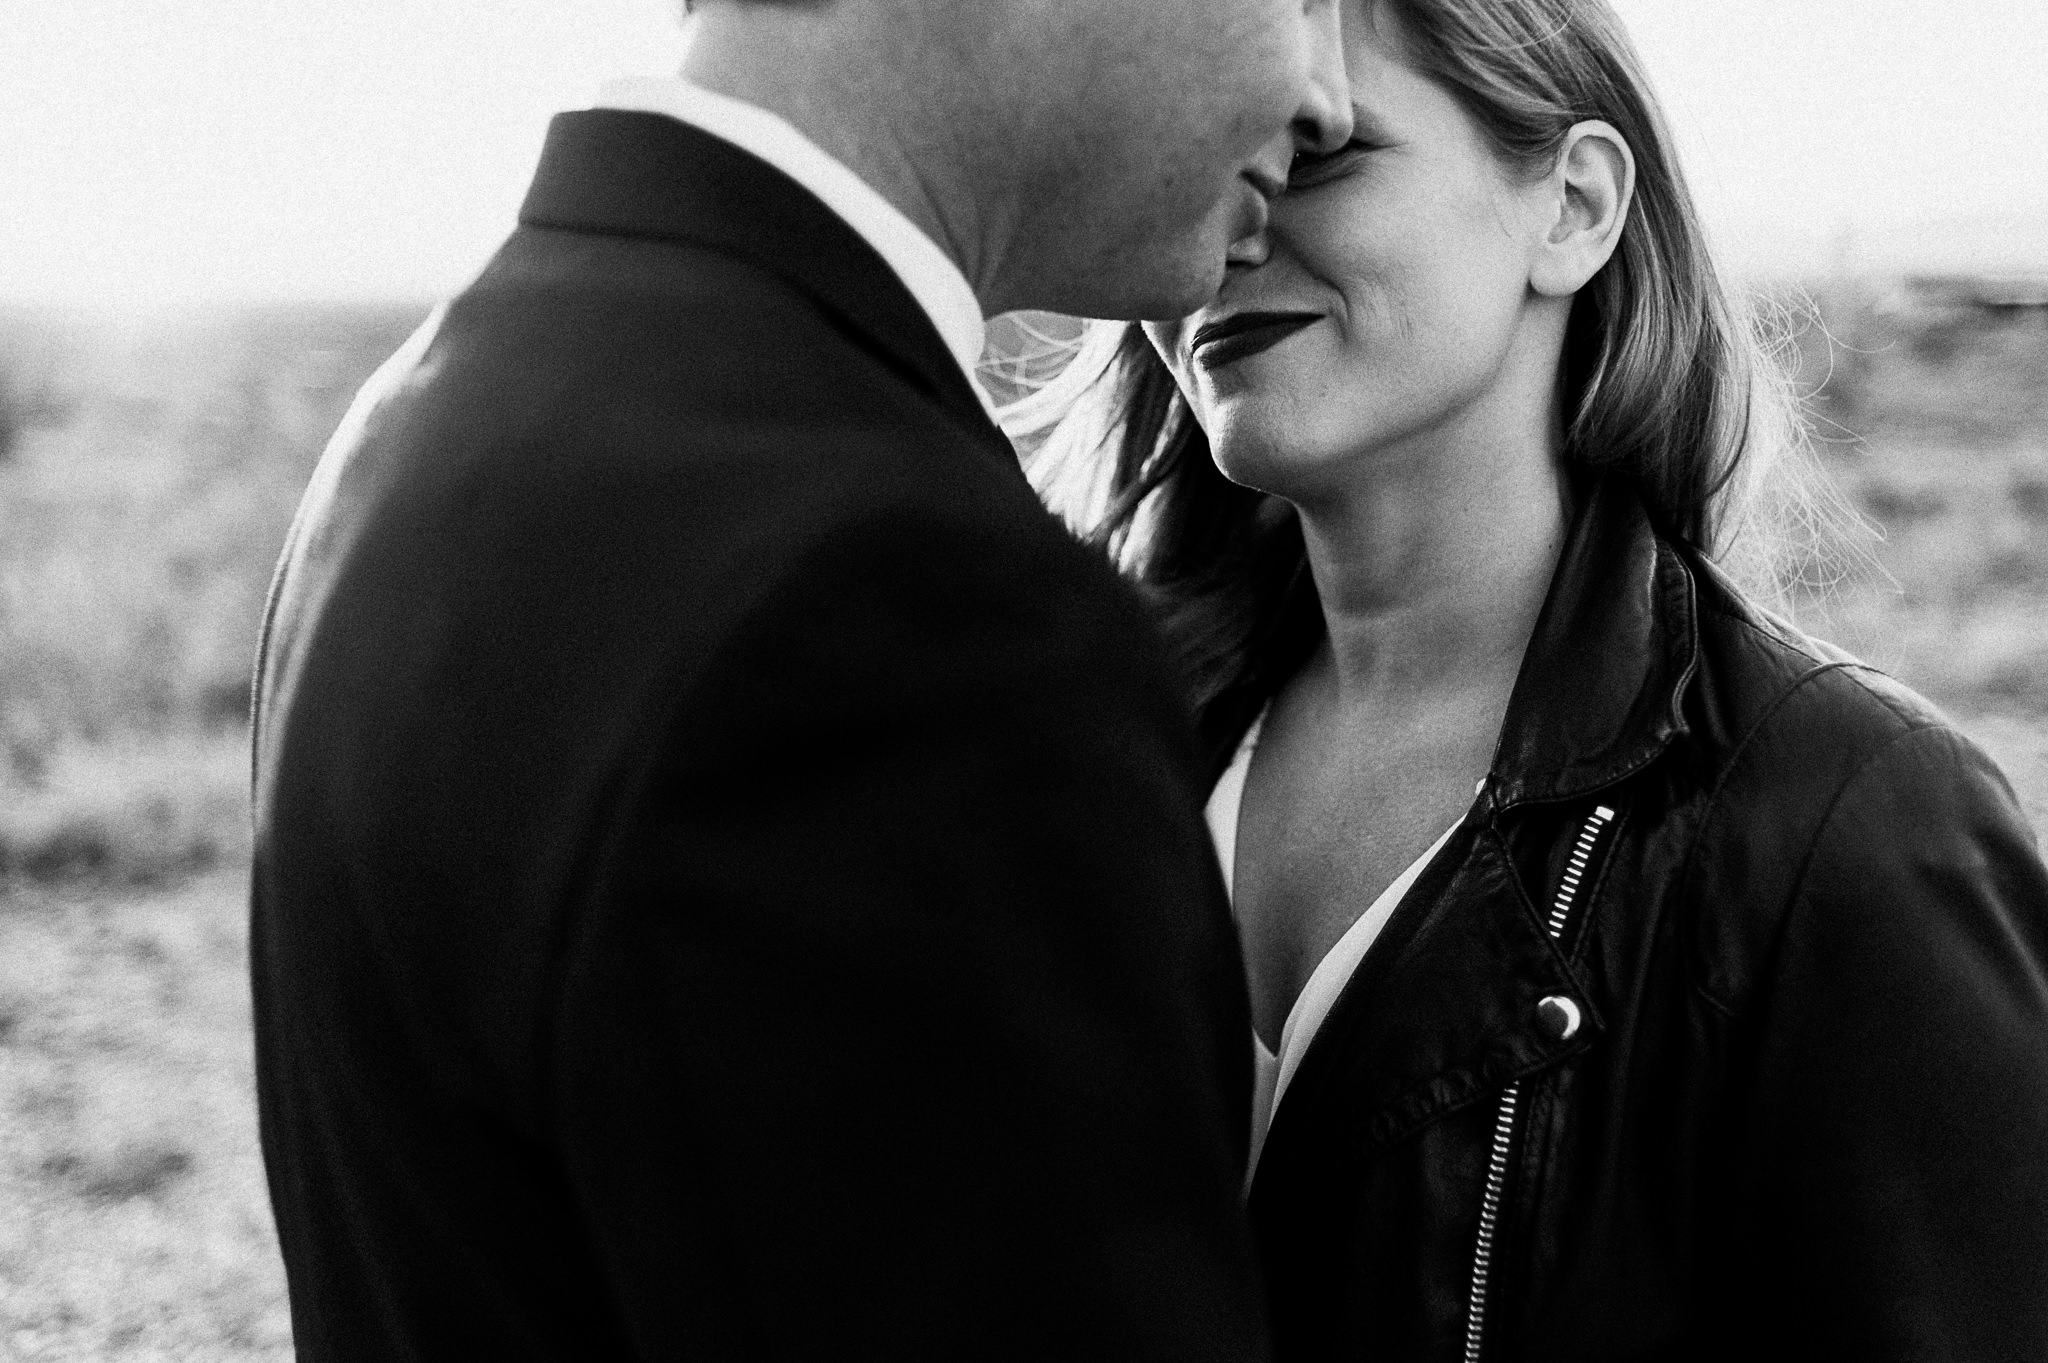 A black and white photo of a couple who puts their heads close together.